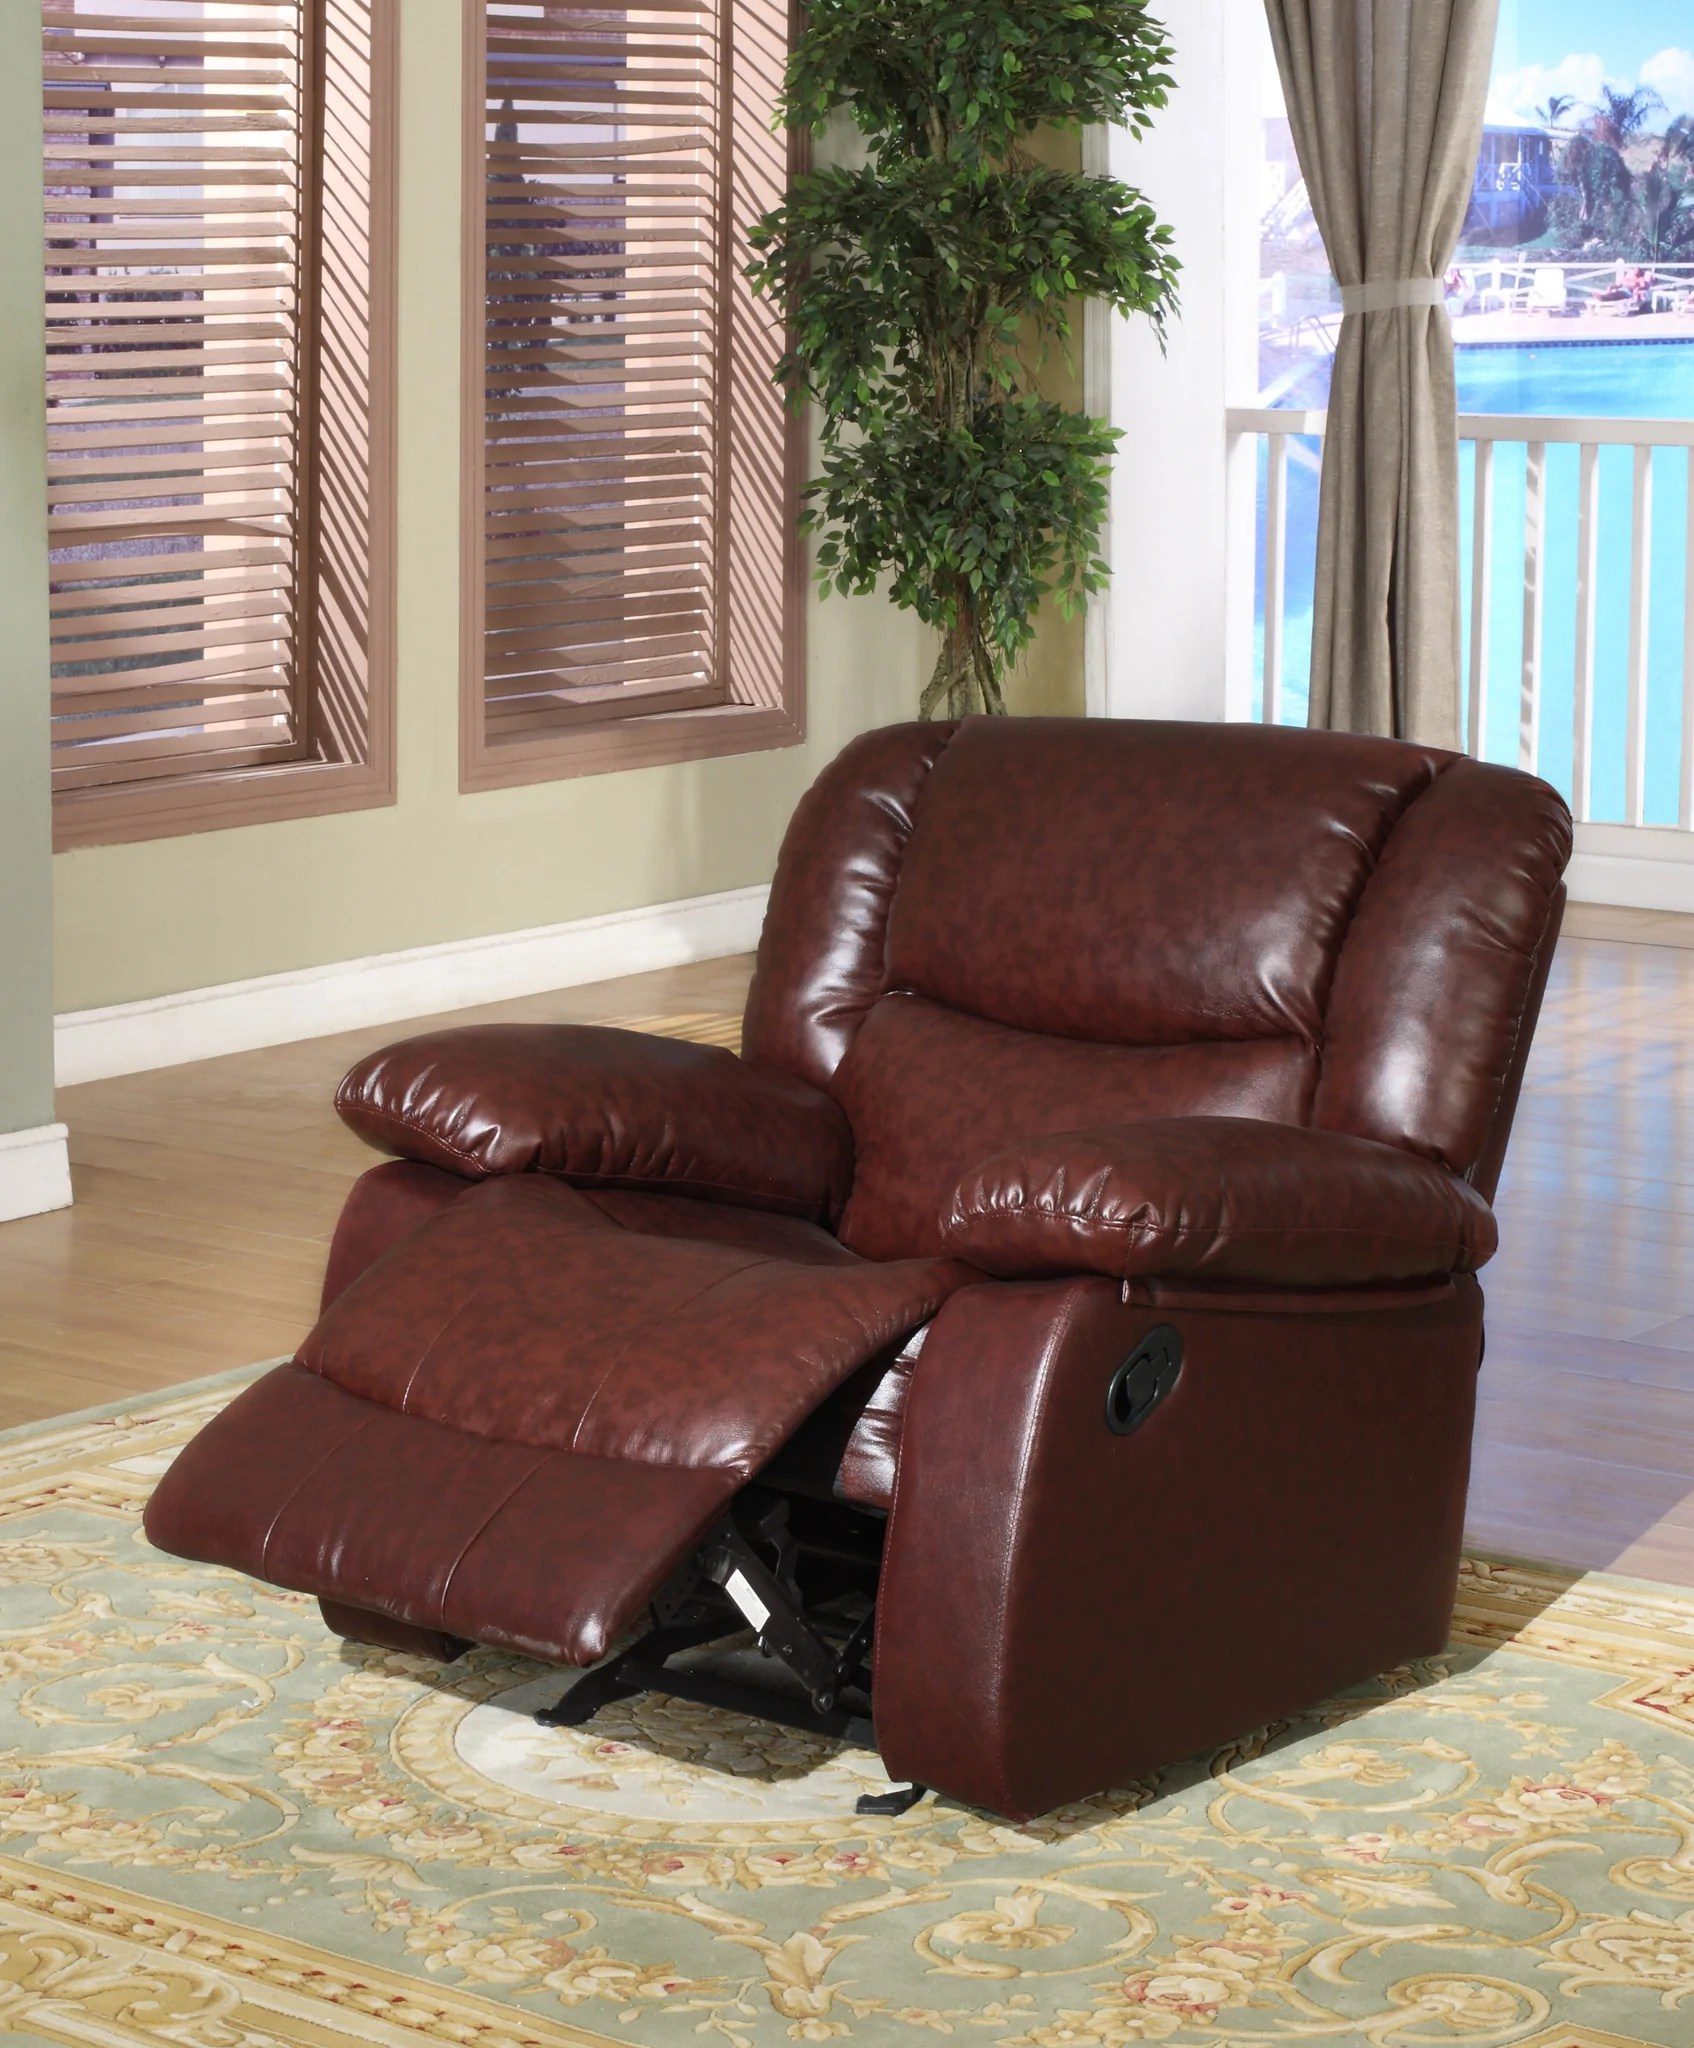 brooklyn bonded leather lounger chair and ottoman christmas high covers black chocolate merlot or putty upholstered microfiber transitional configurable motion